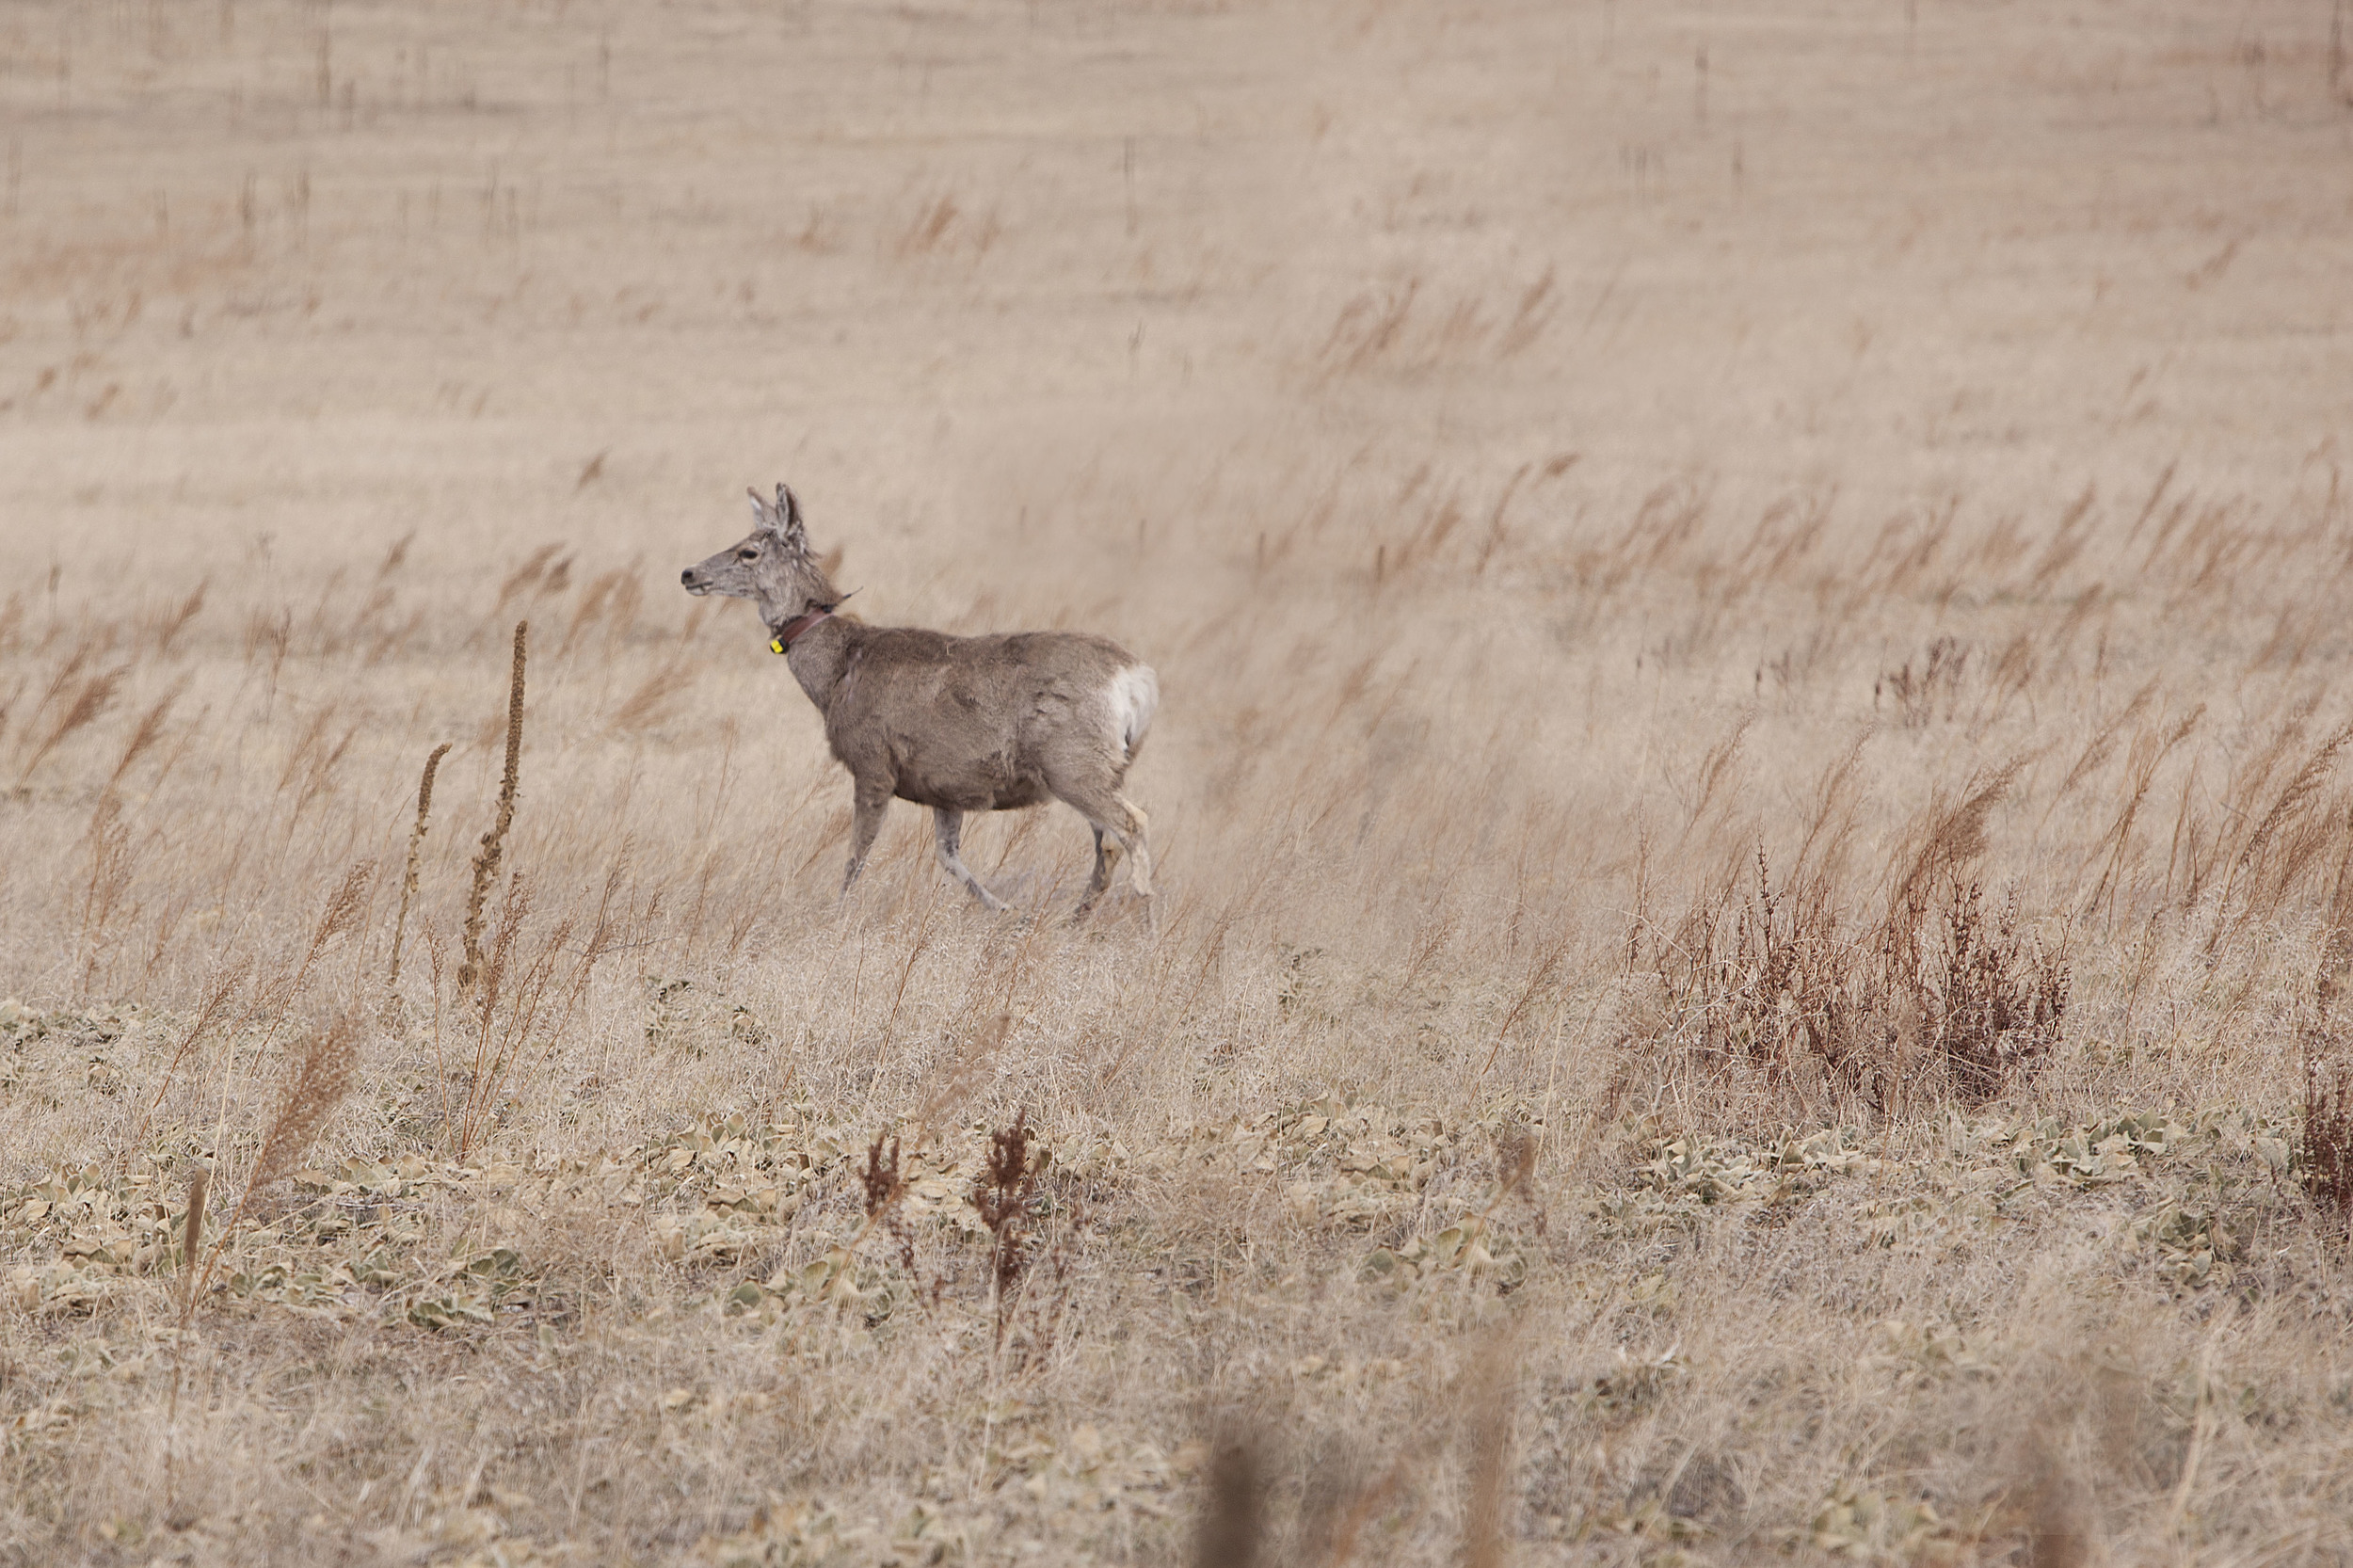 A mule deer fitted with a new radio collar makes her way across the prairie.